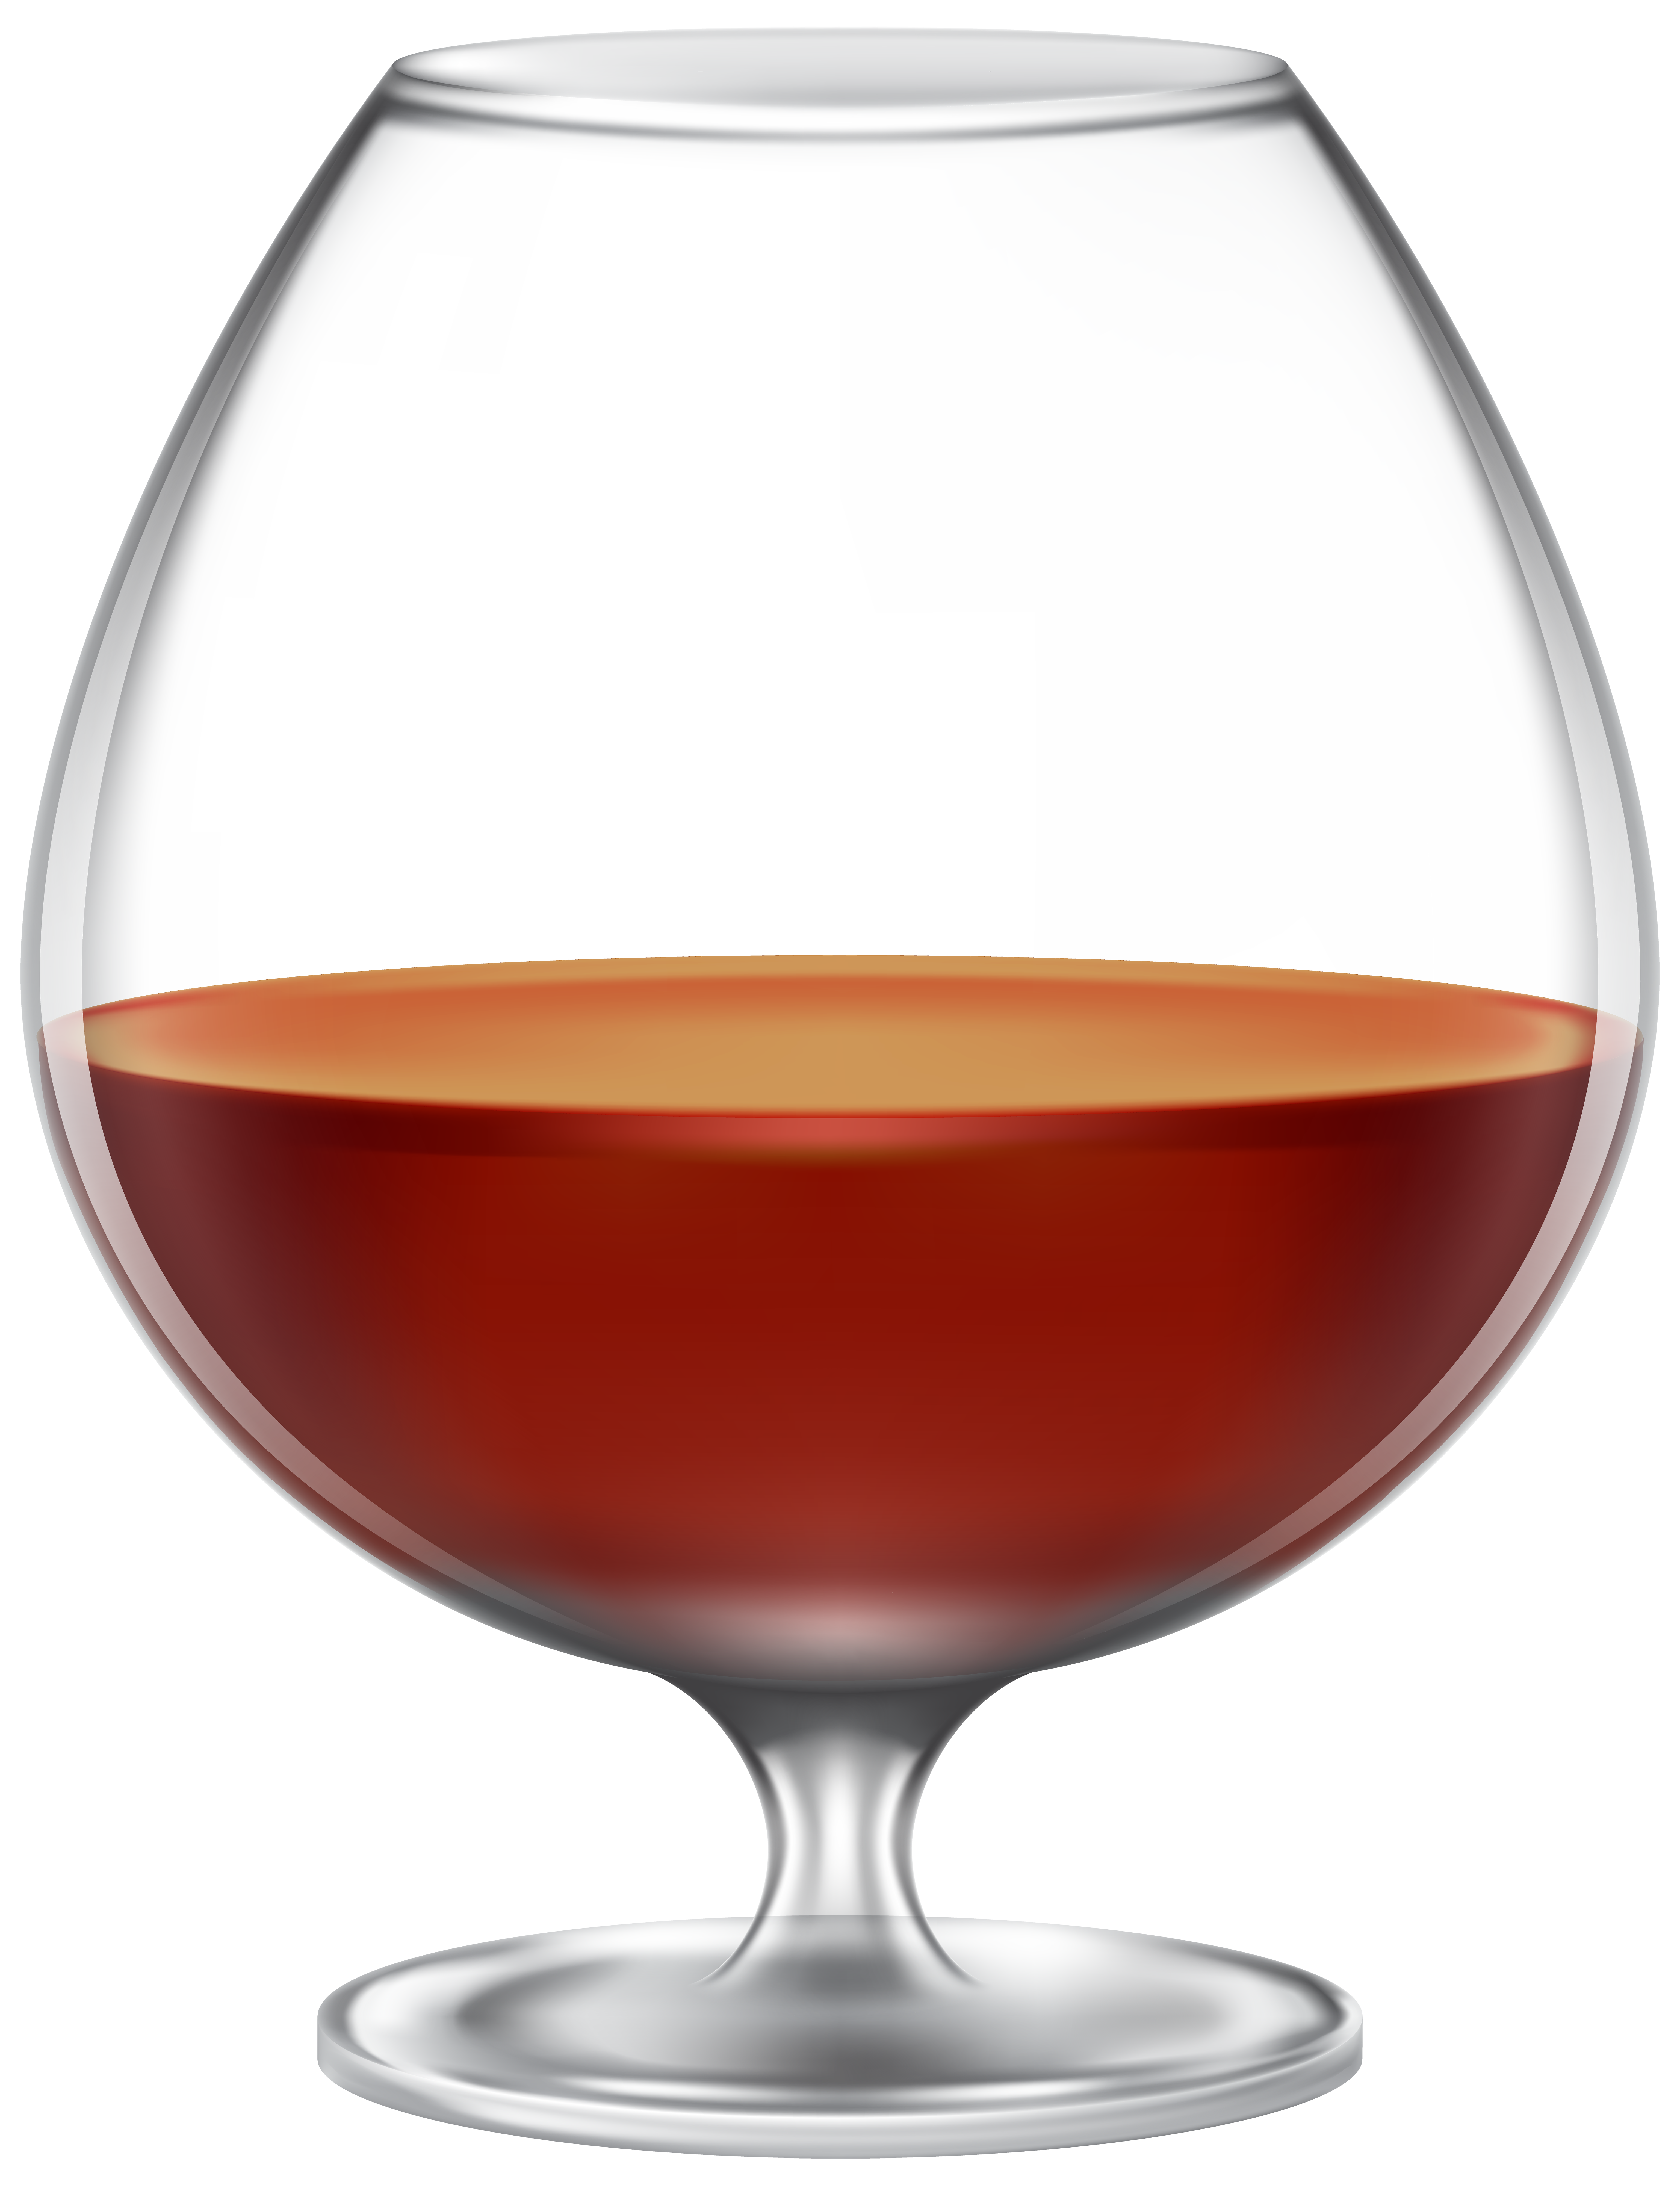 Clip art image gallery. Brandy glass png picture library